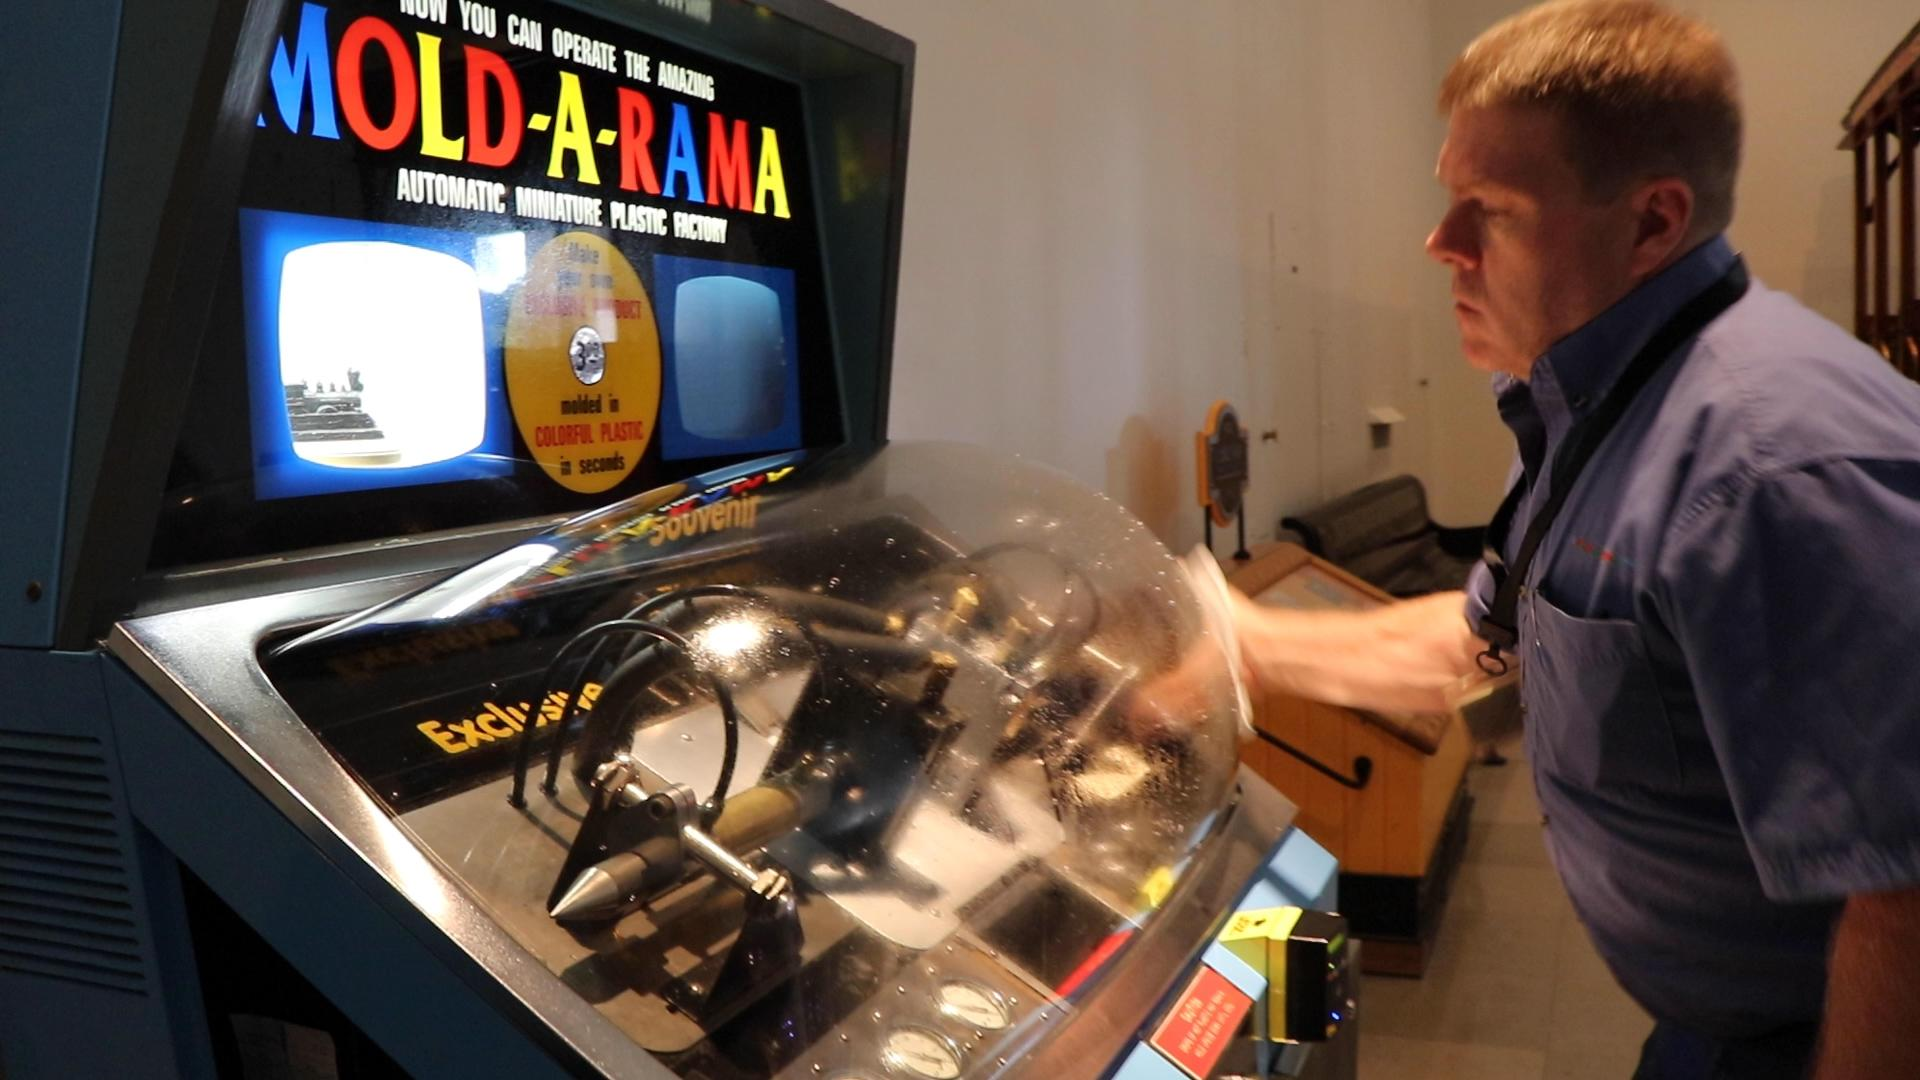 Paul Jones of Mold-A-Rama Inc. checks on a souvenir machine at the Museum of Science and Industry. (Evan Garcia / WTTW News)